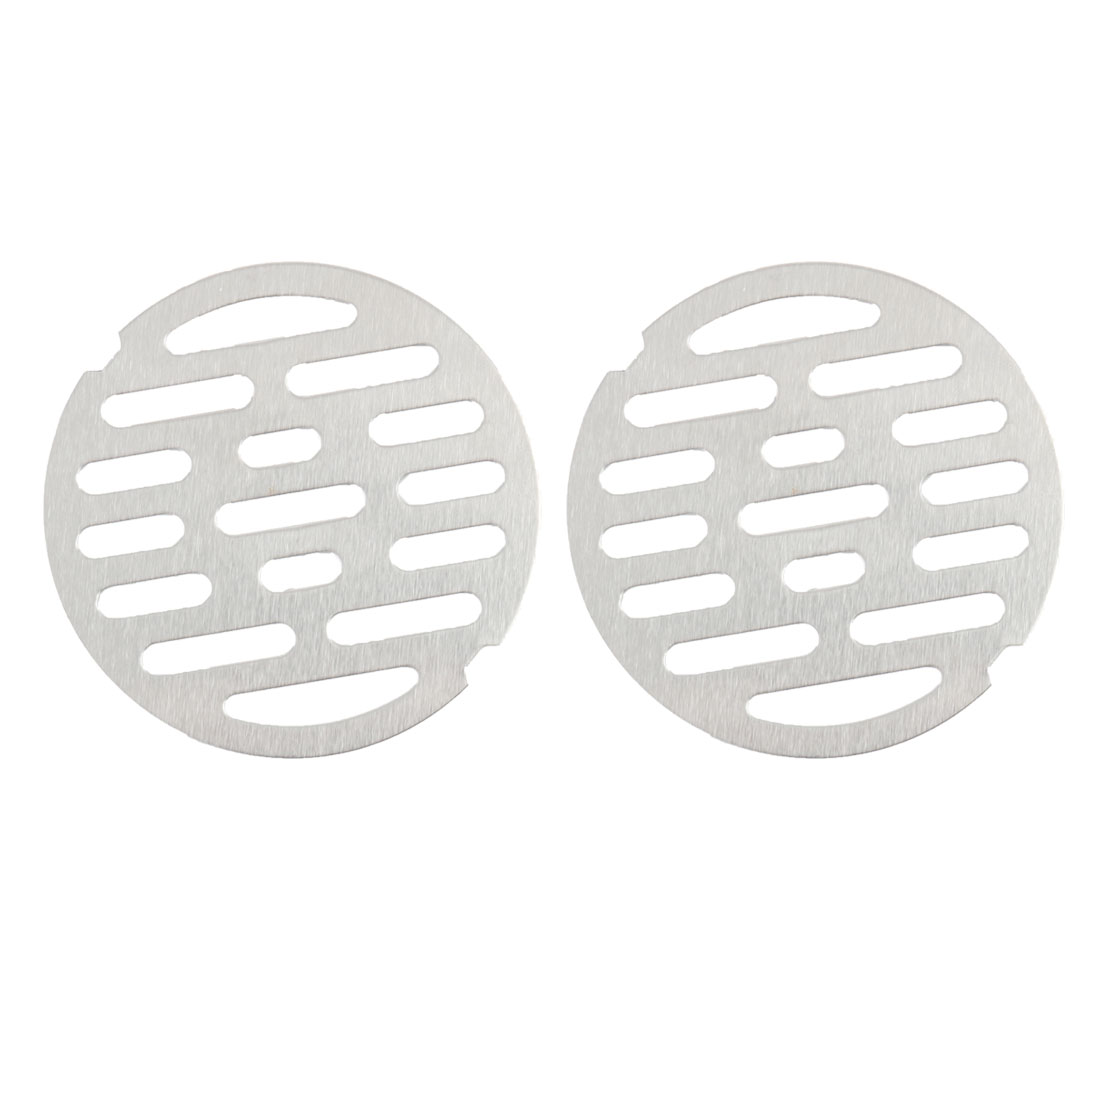 2pcs 2.9 Inch Snap-in Floor Drain Cover Hair Catcher Sink Drain Strainer Stopper